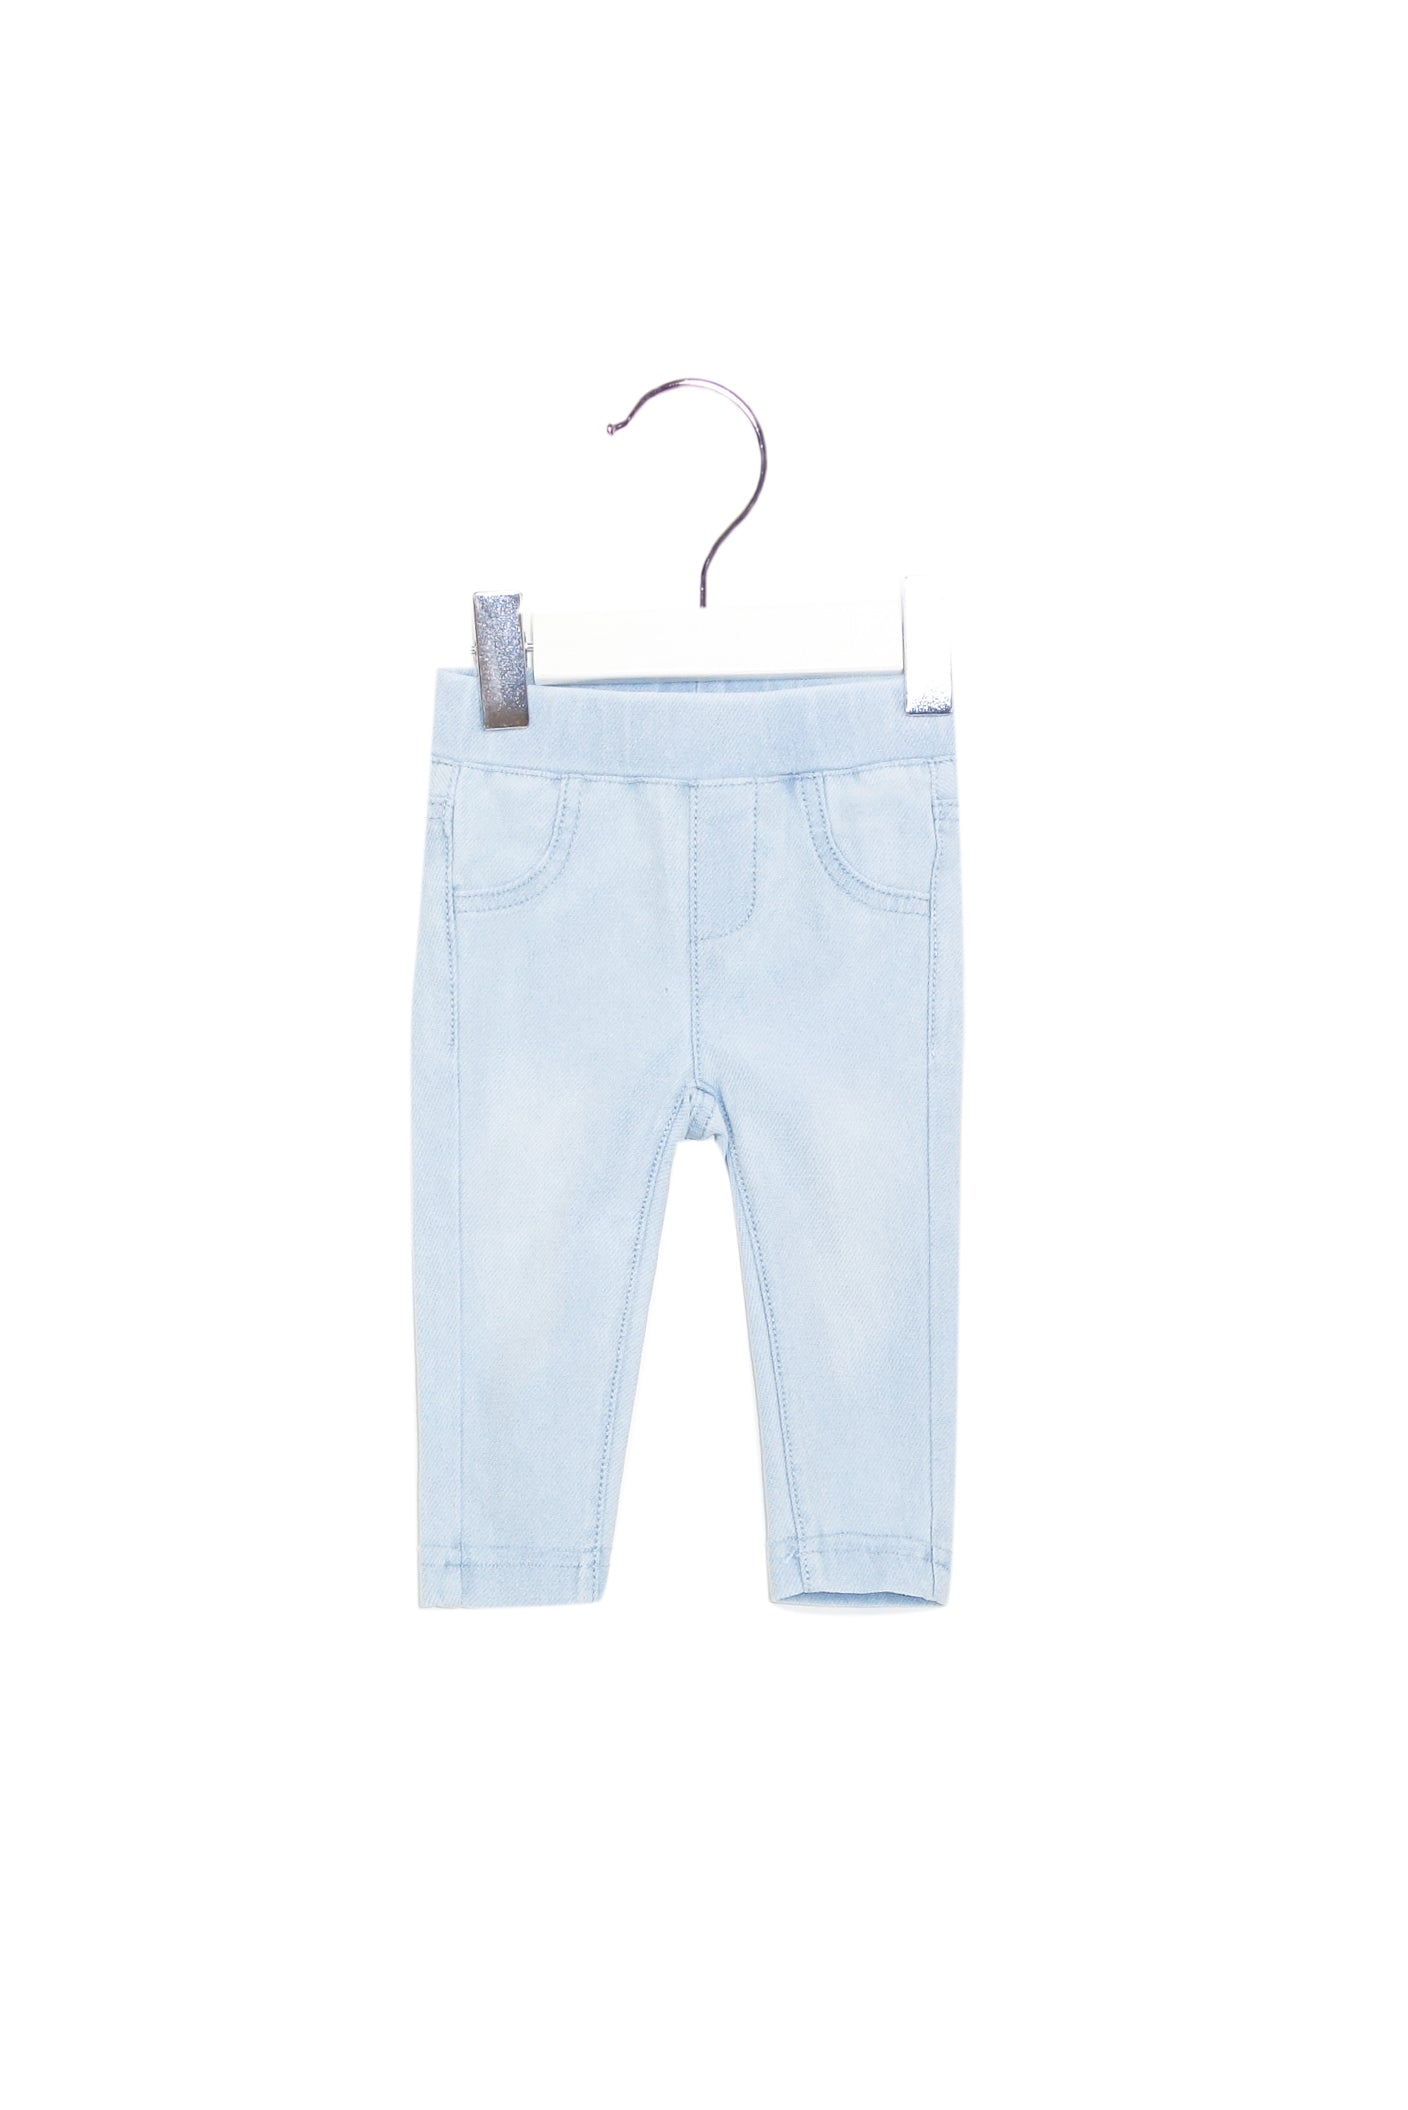 10014472 Seed Baby ~ Jeans 0-3M at Retykle